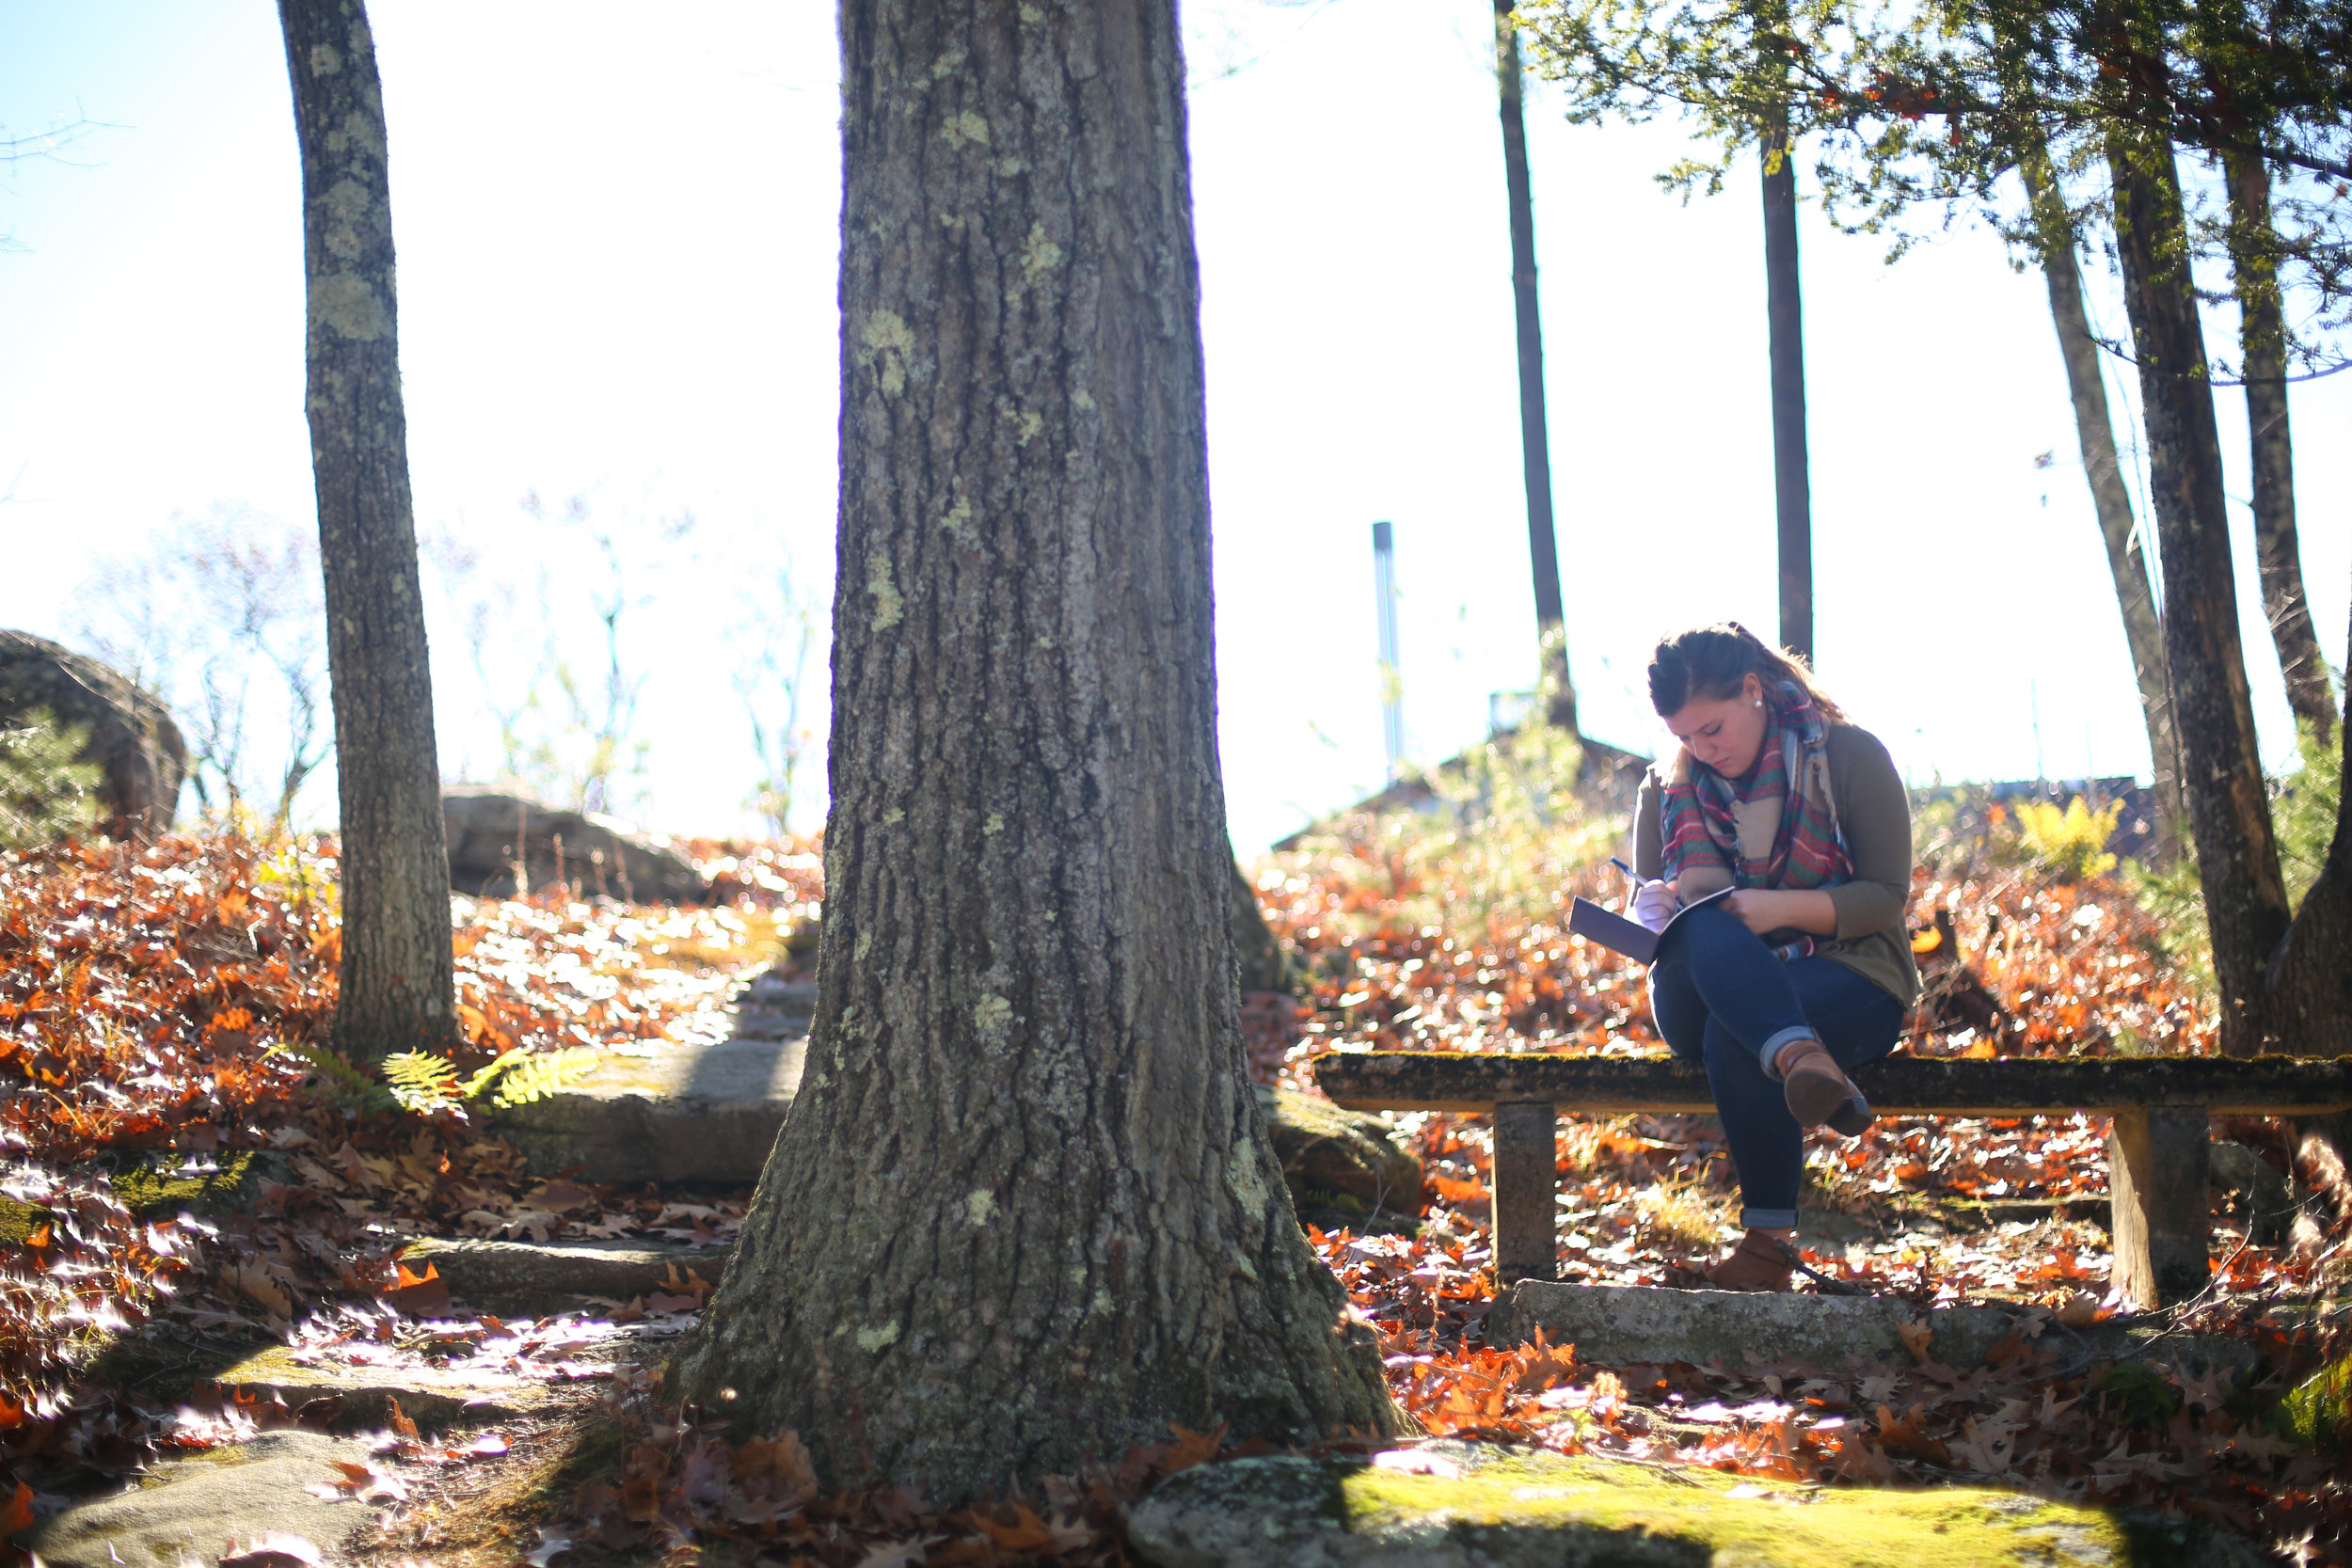 A student pauses to reflect on the grounds of the Contemplative Center (photo by Tom Retigg for the College of the Holy Cross)